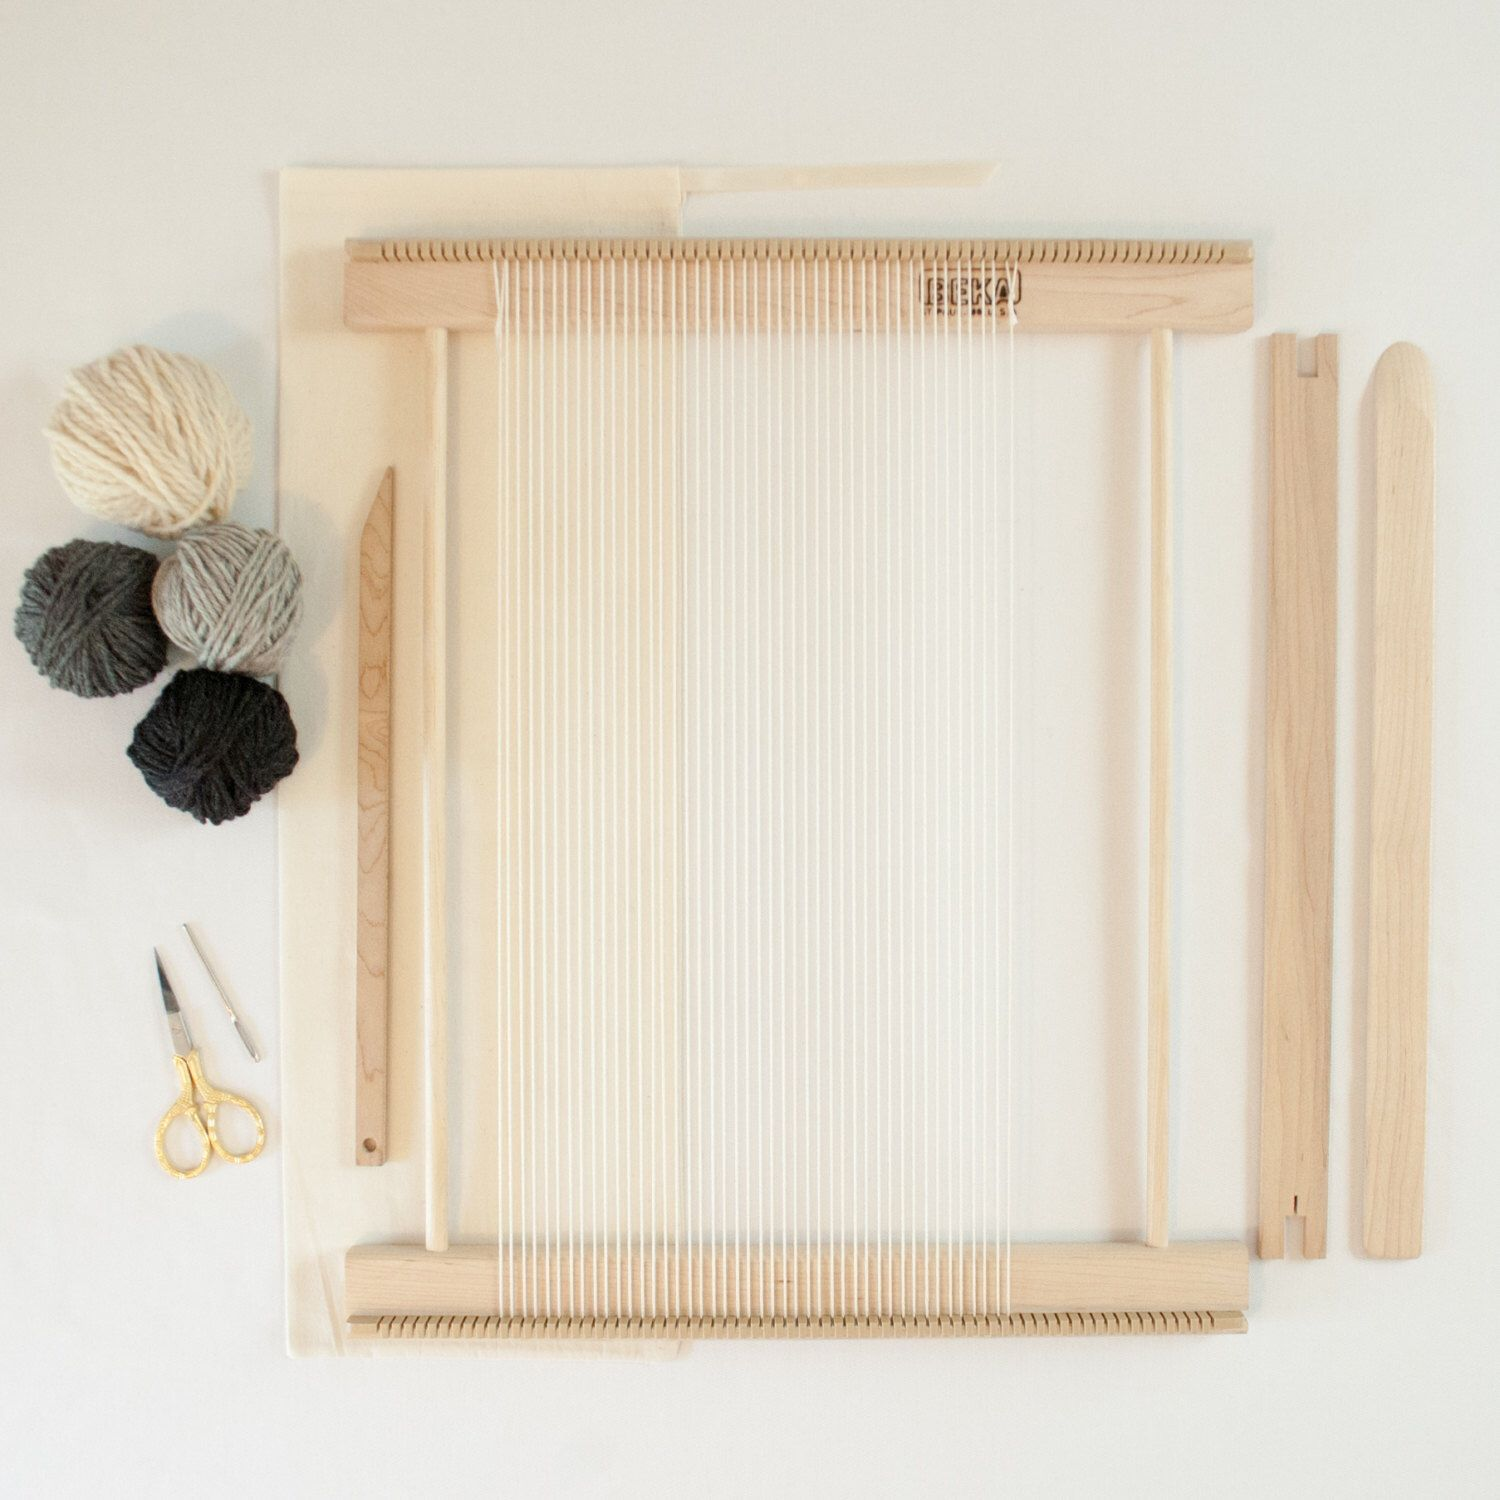 Beginners Frame Loom Weaving Kit / Everything you need to make your ...